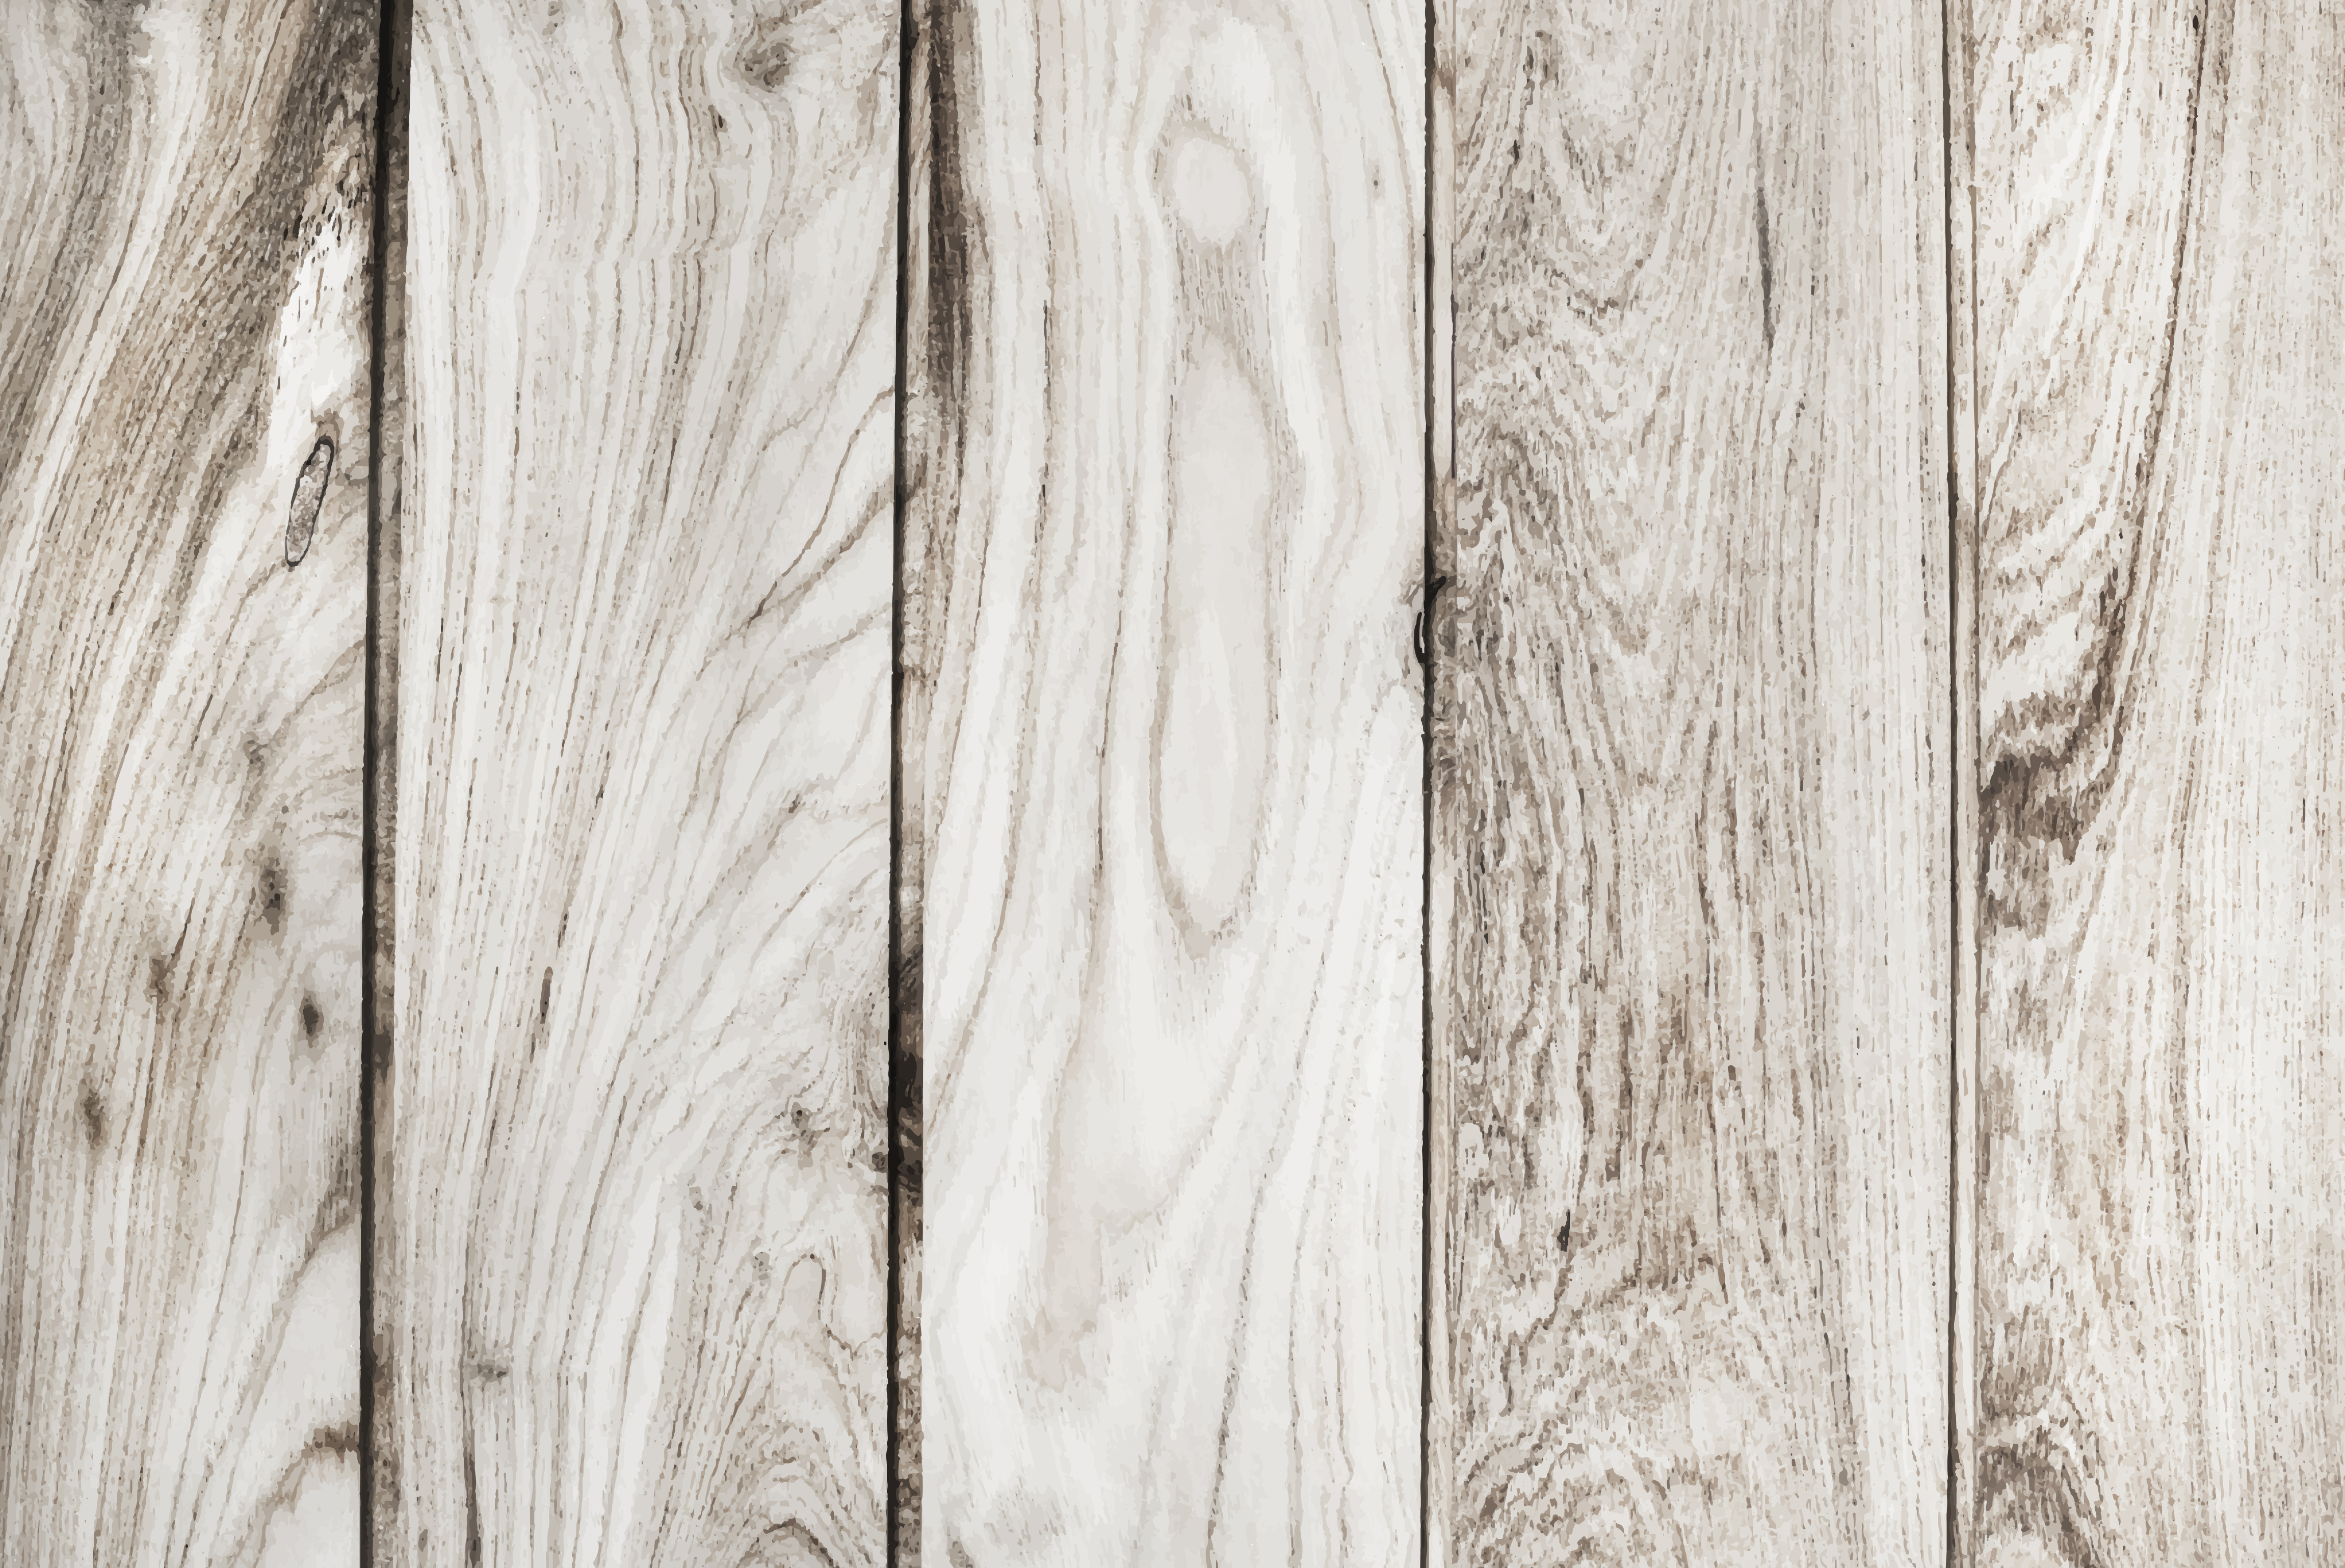 Light wooden flooring textured background download free for Legno chiaro texture